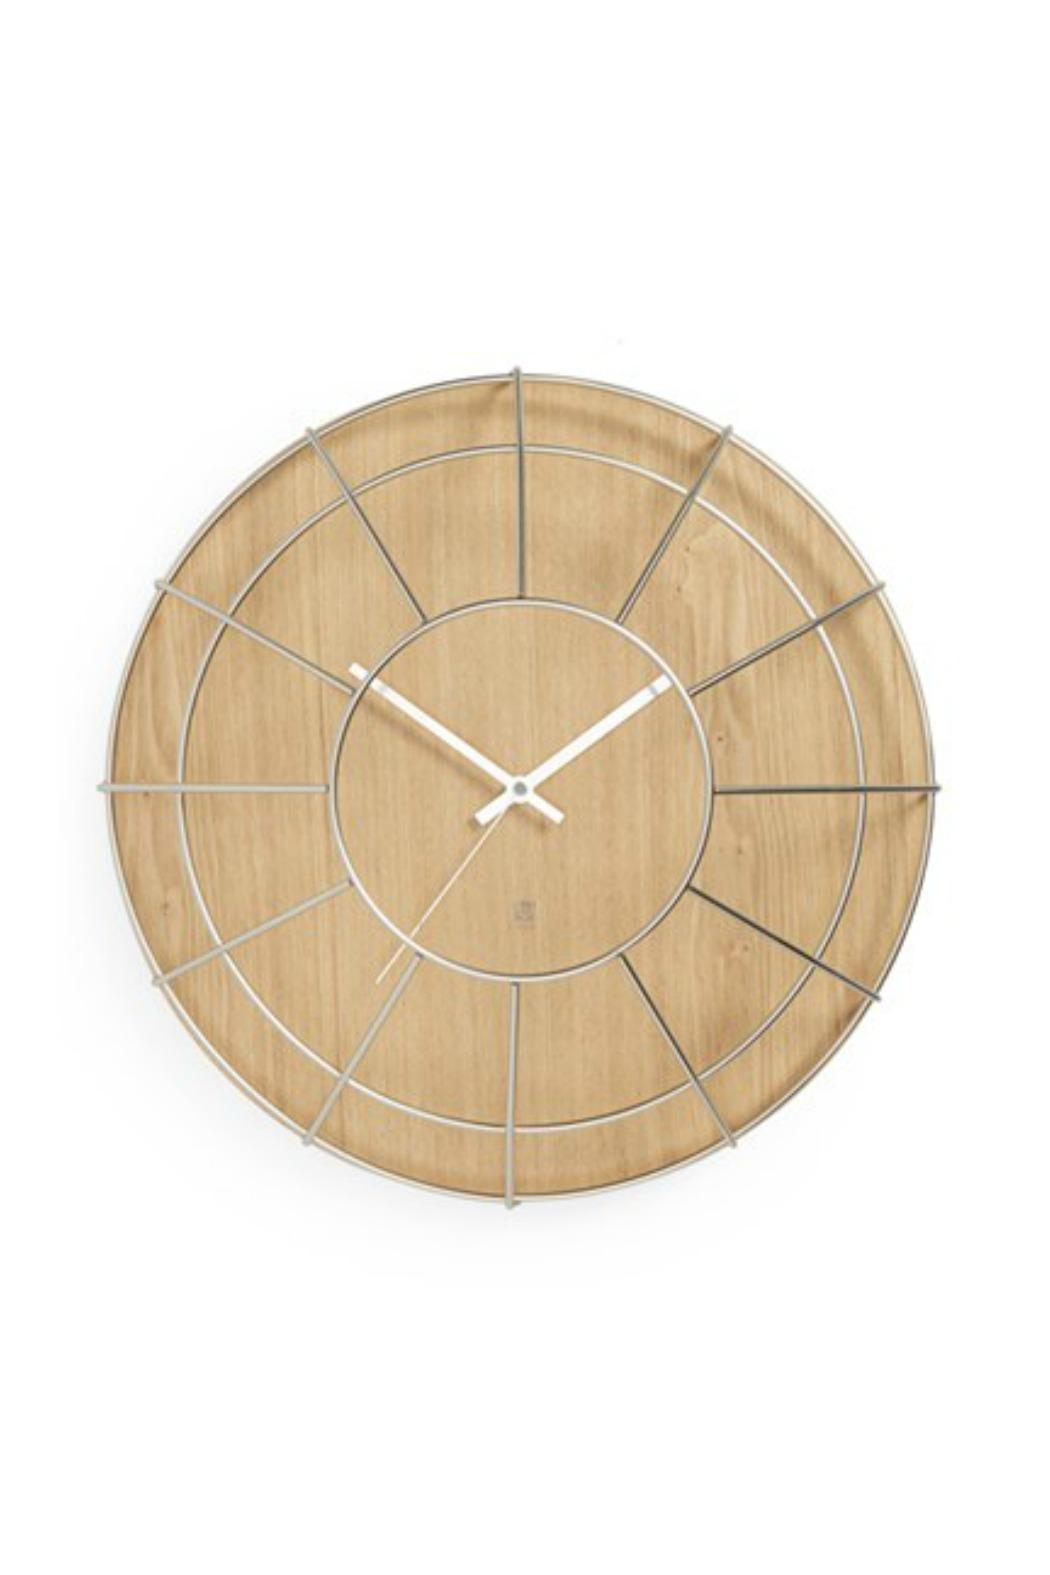 Umbra Cage Wall Clock from Canada by Inspired Living Decor — Shoptiques